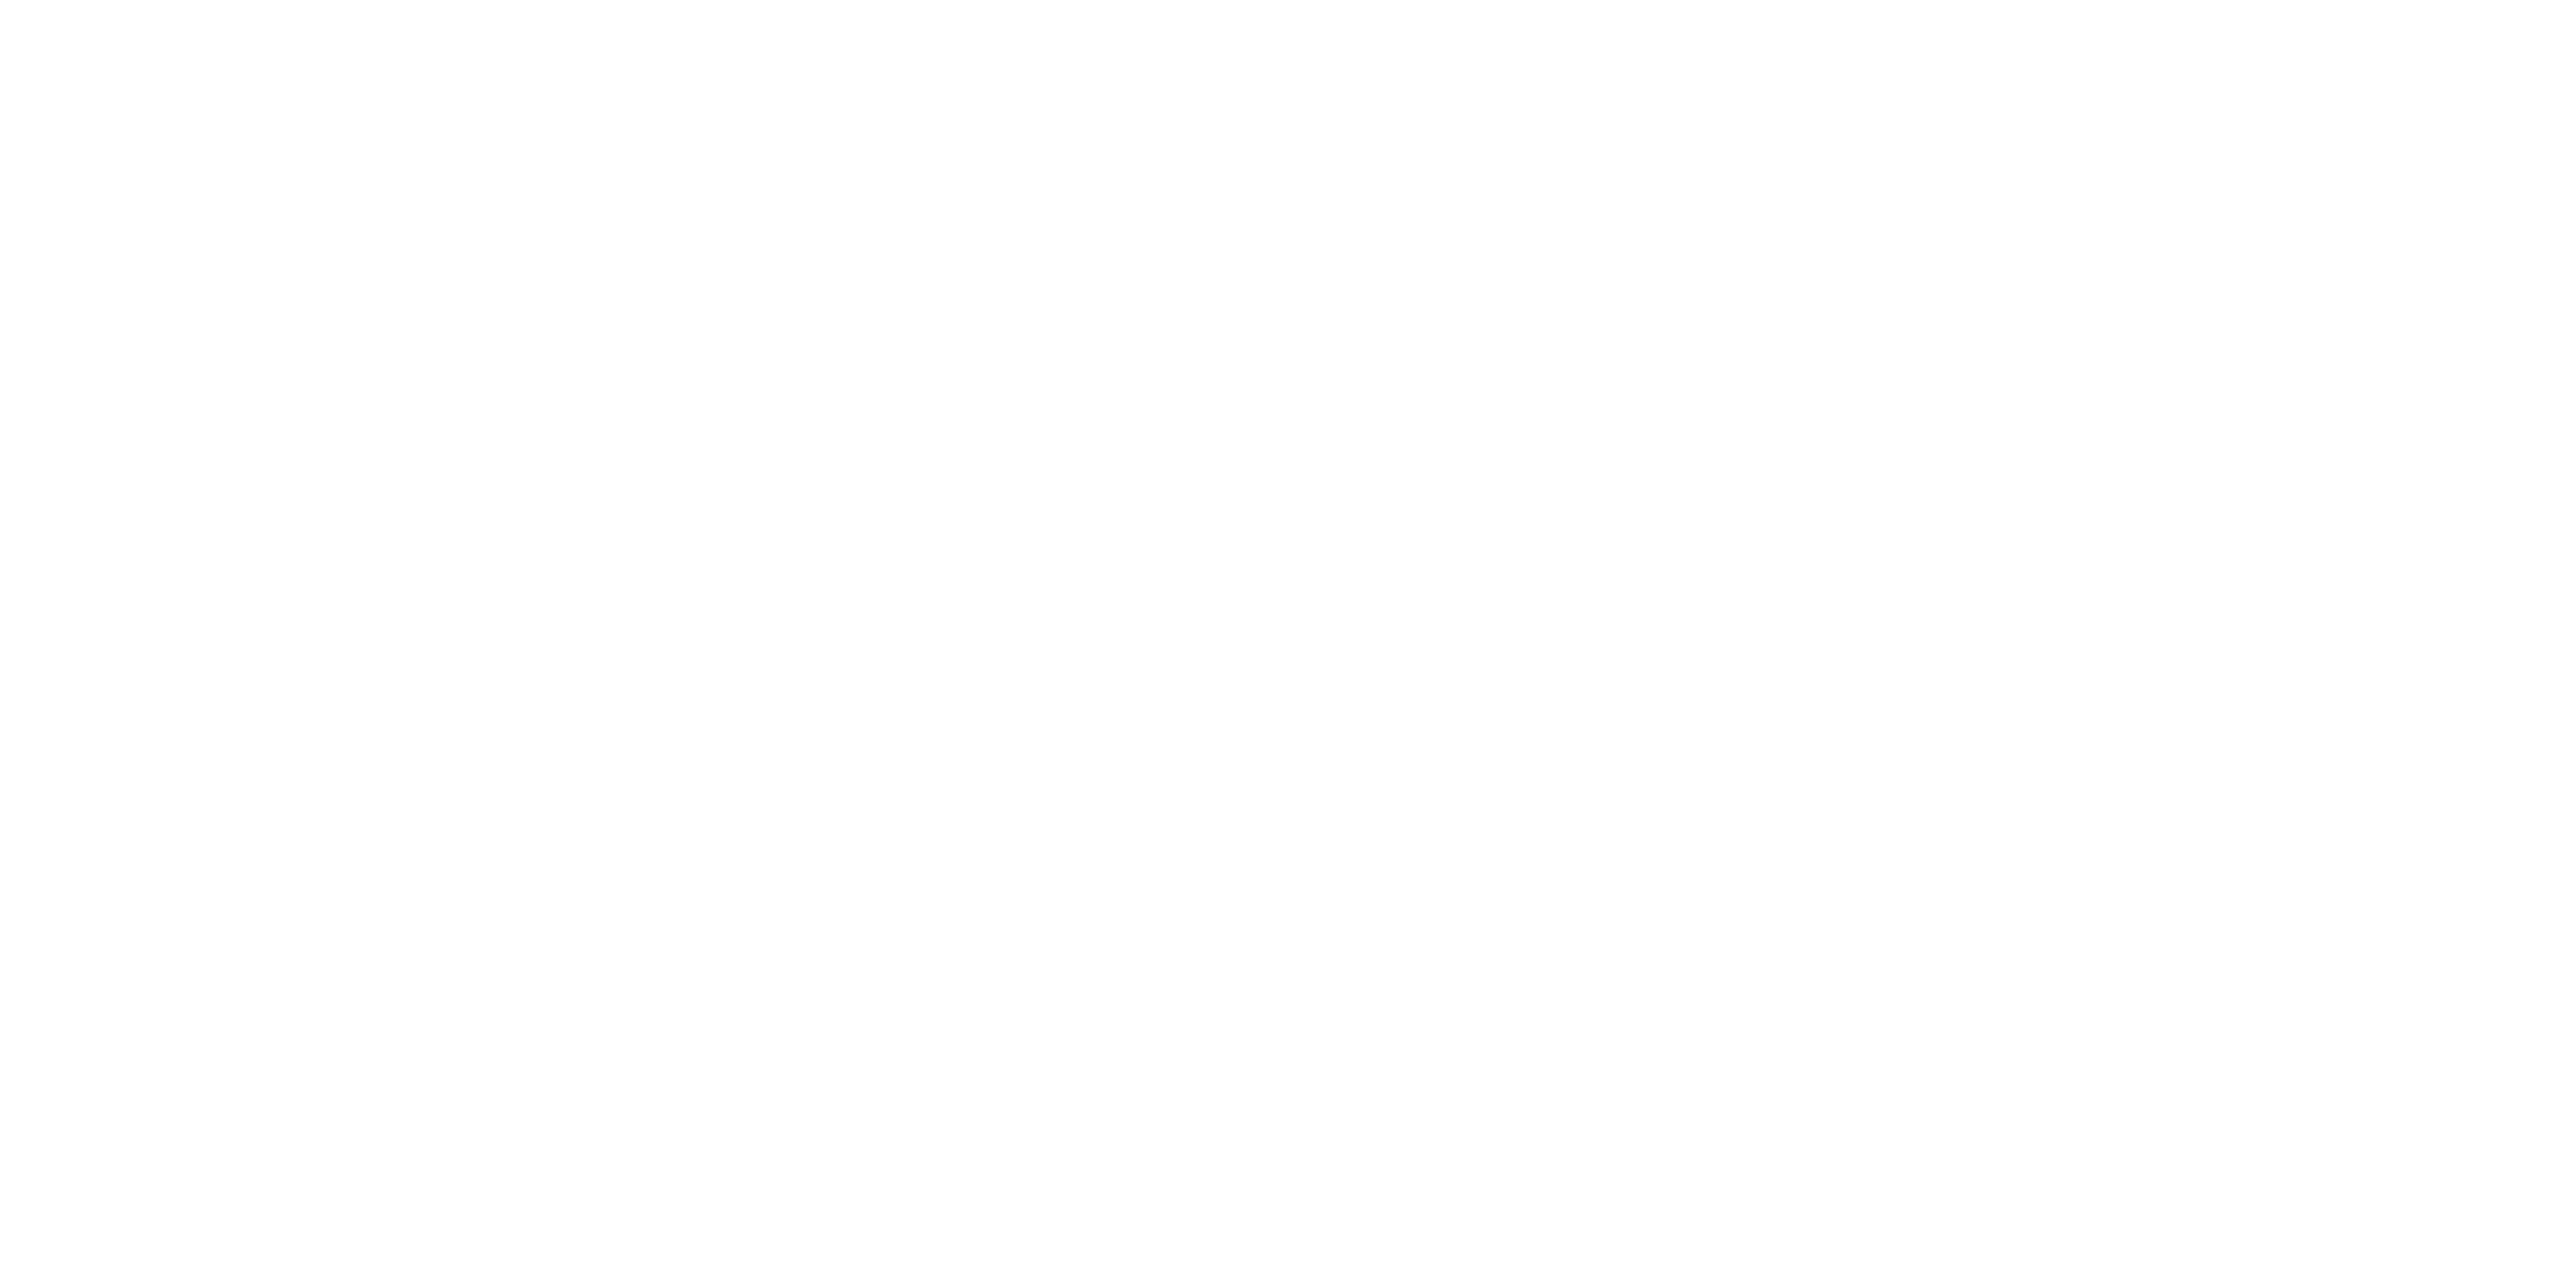 RRBH Law